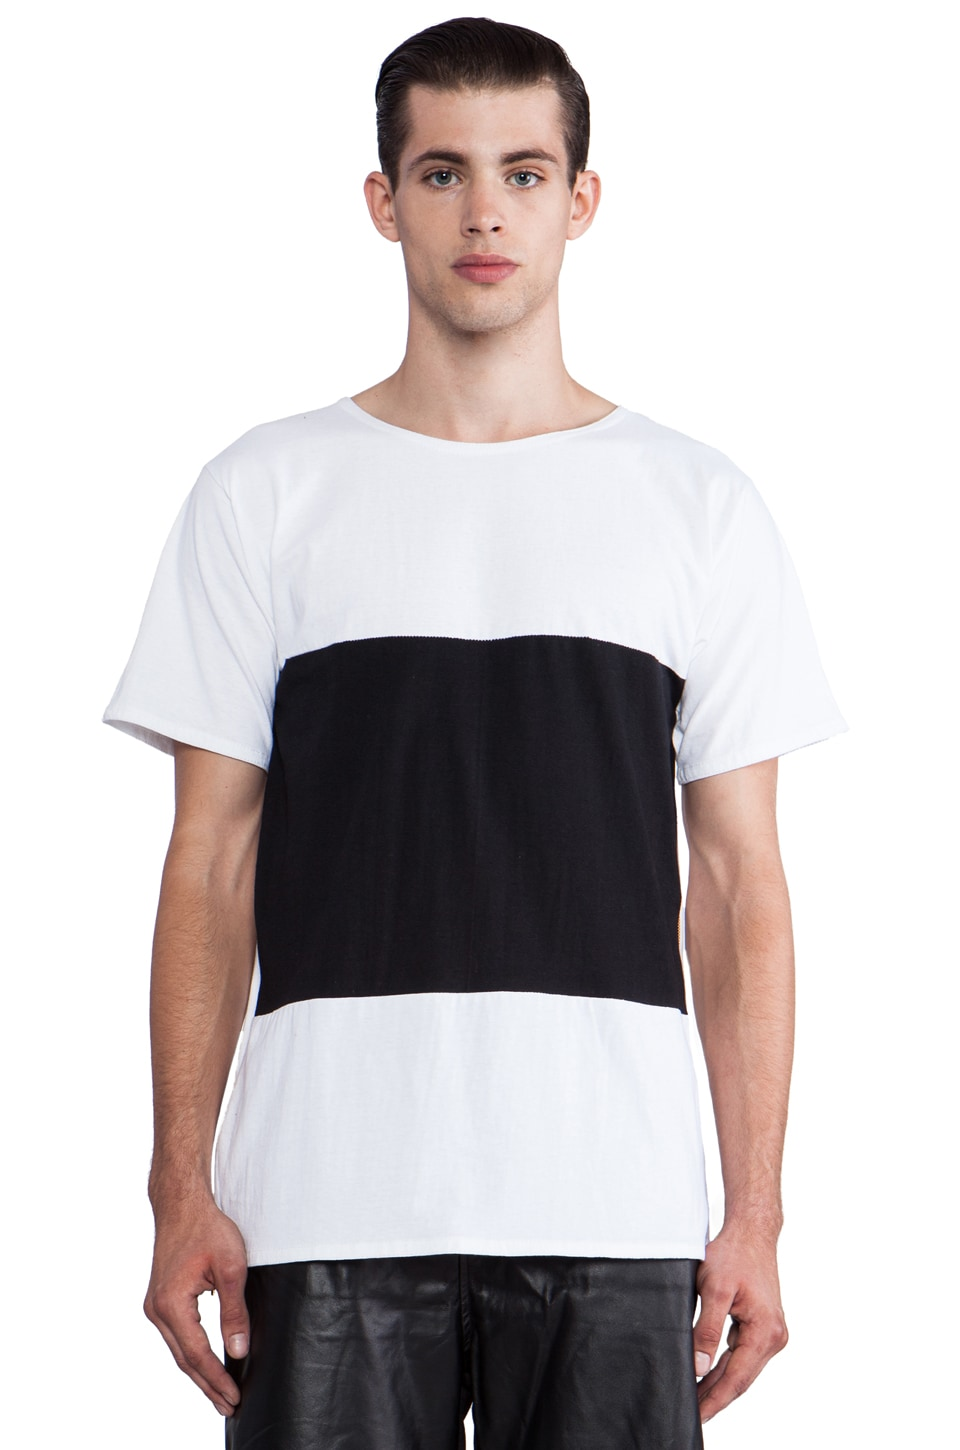 Iridium W/B Oversized T-Shirt Zipp in Black & White